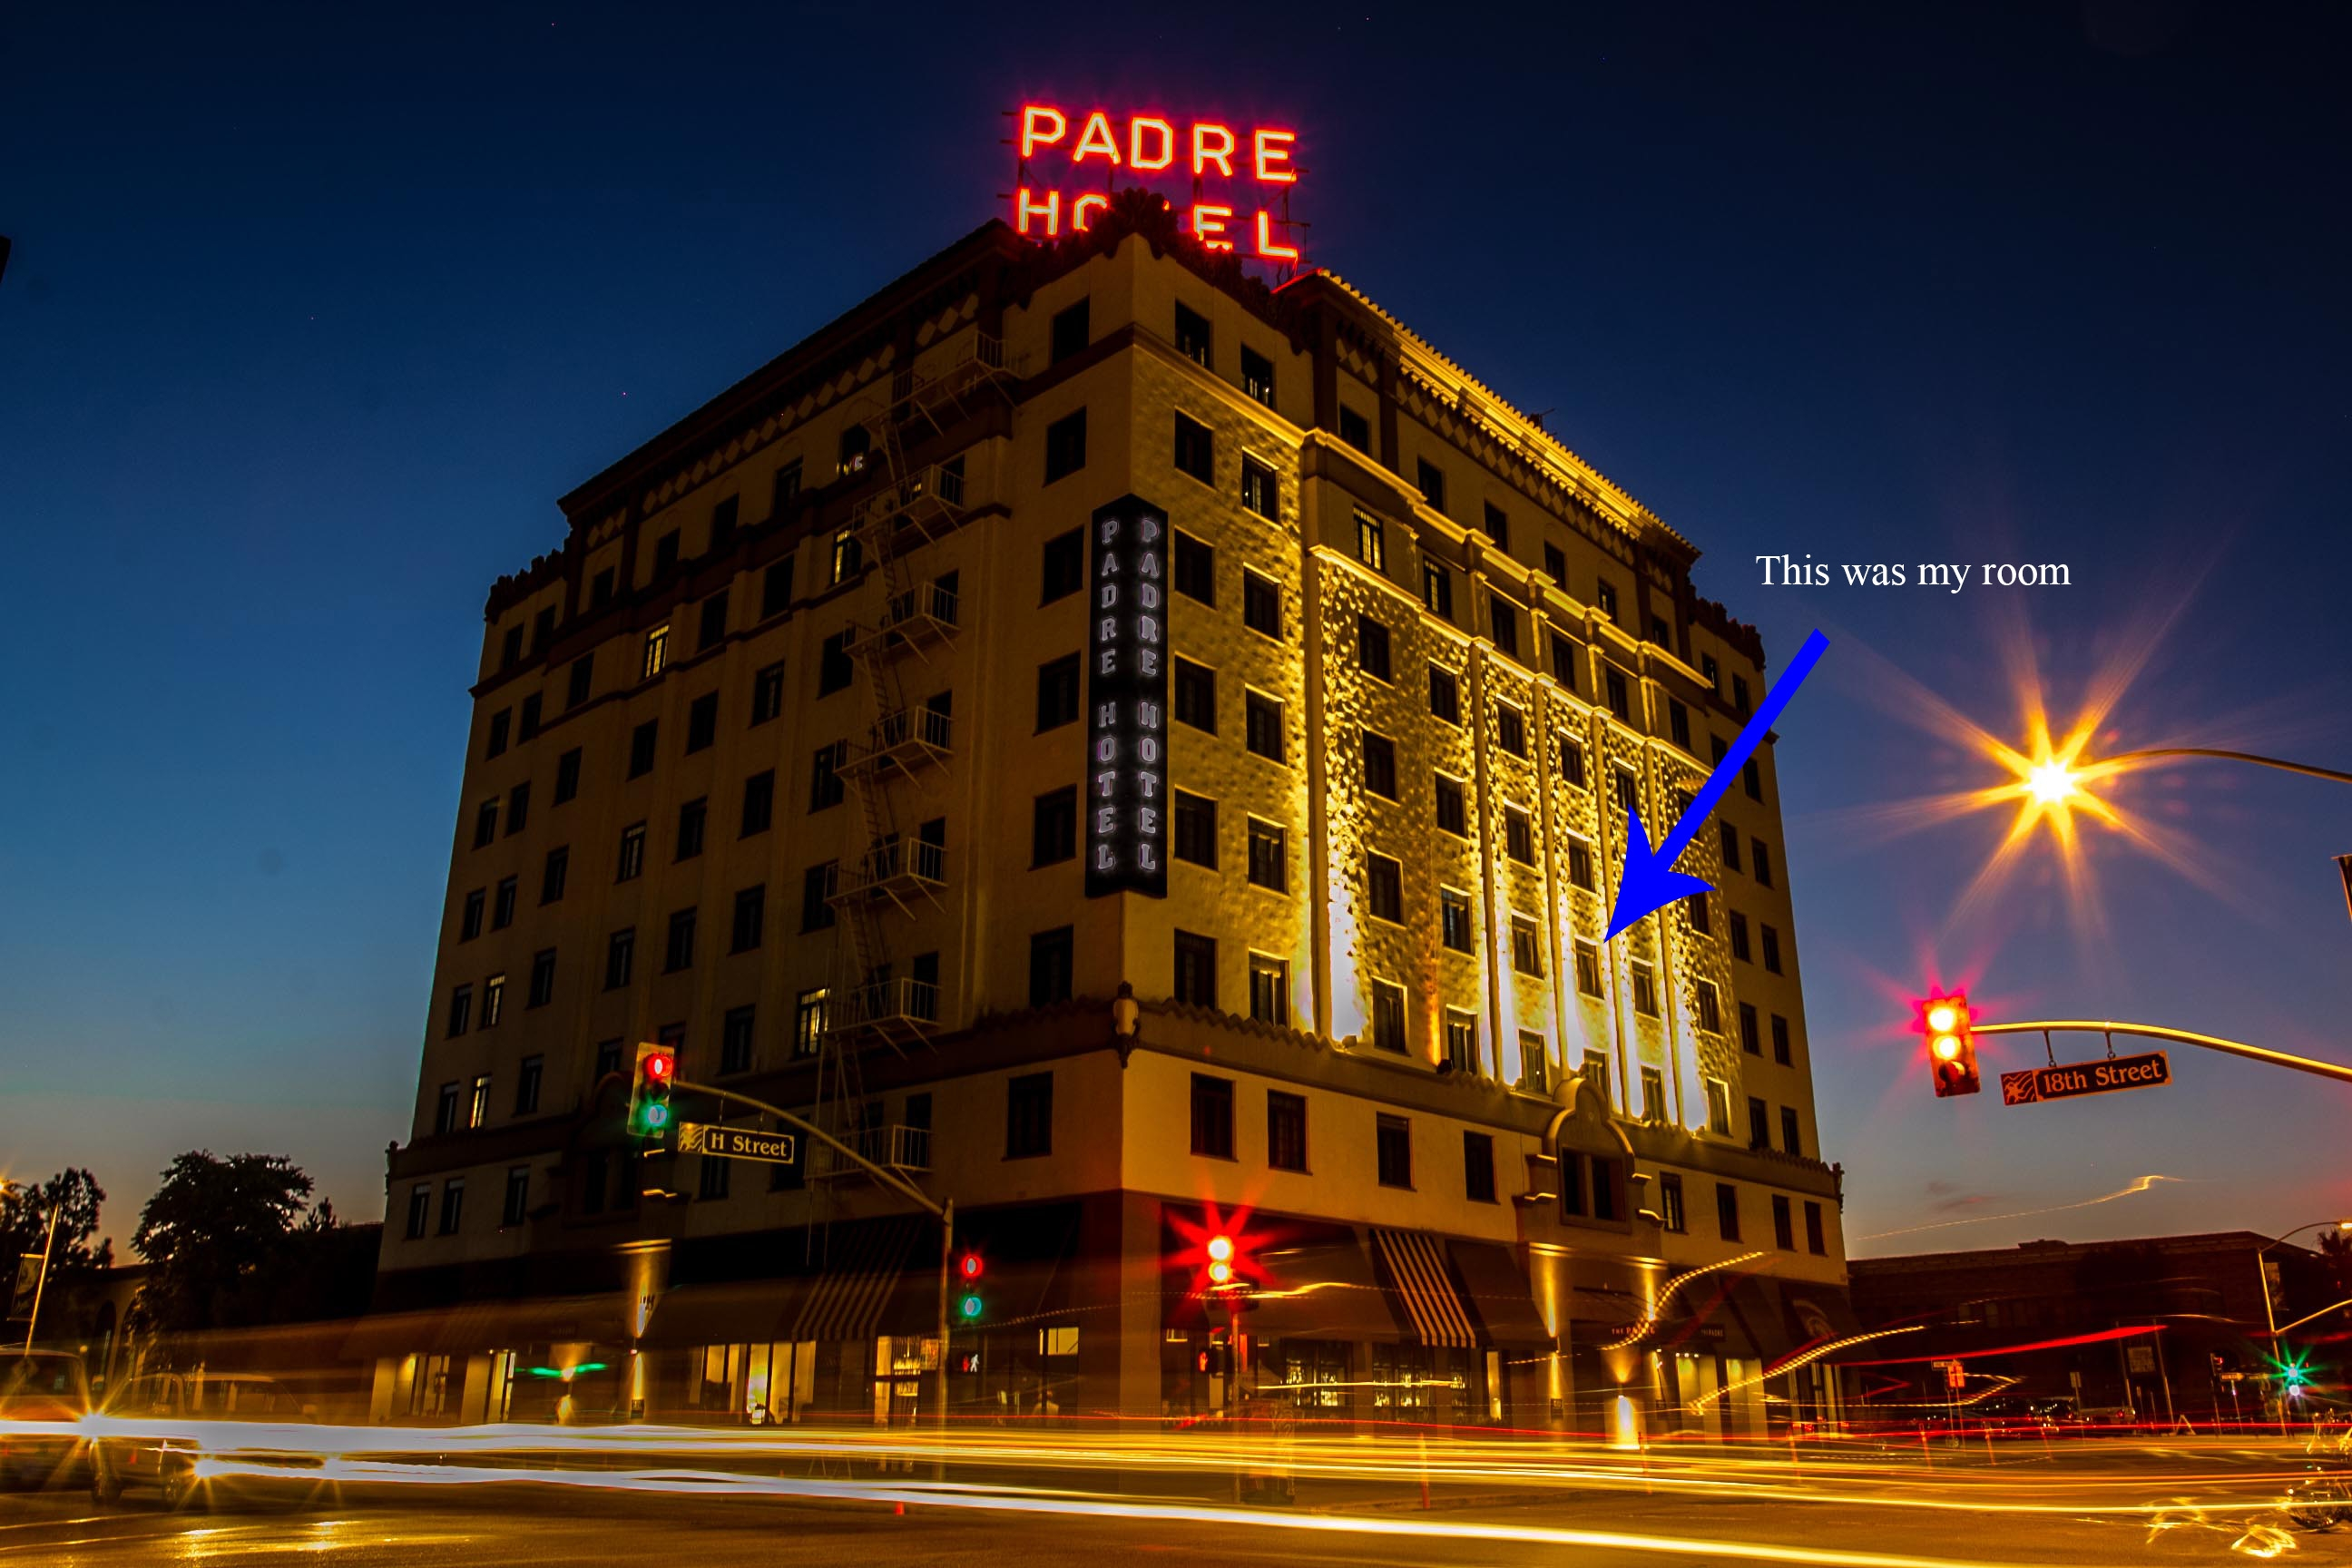 Apparently the Padre Hotel didn't get the memo. It seems to think Bakersfield is a real city. (image by imsohideous.wordpress.com)